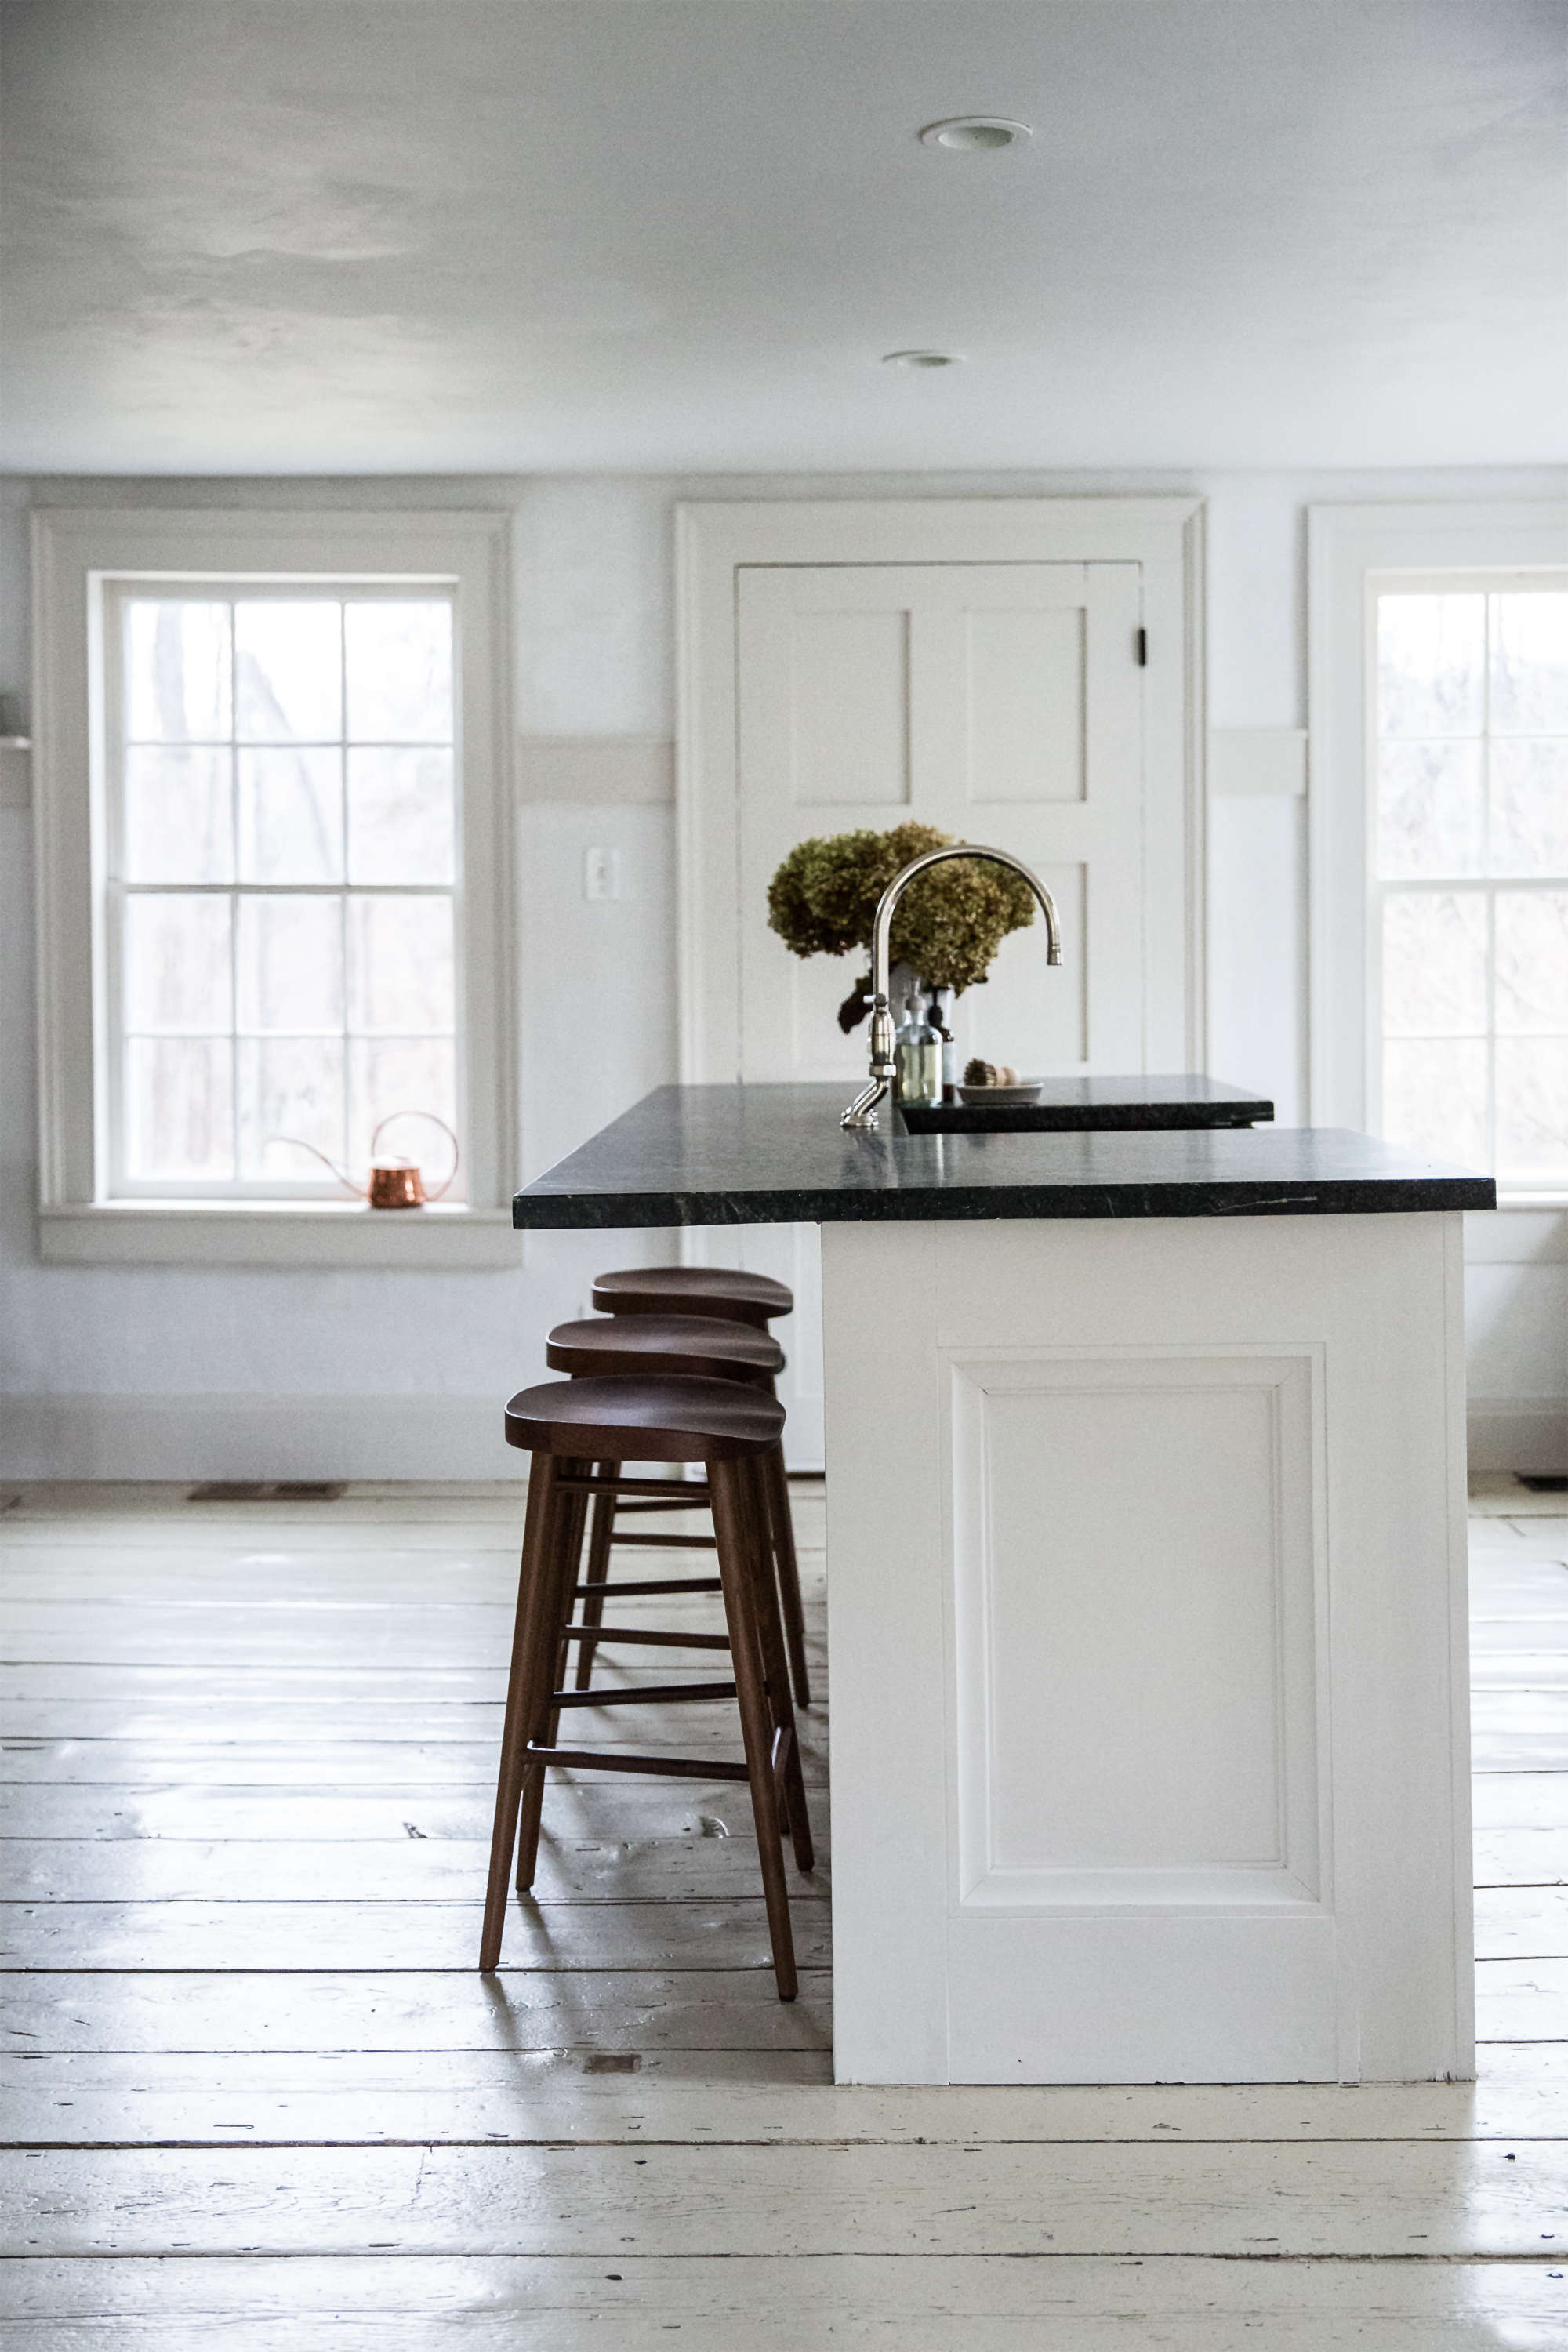 jersey ice cream co. old chatham house, remodelista, kitchen island 2 9